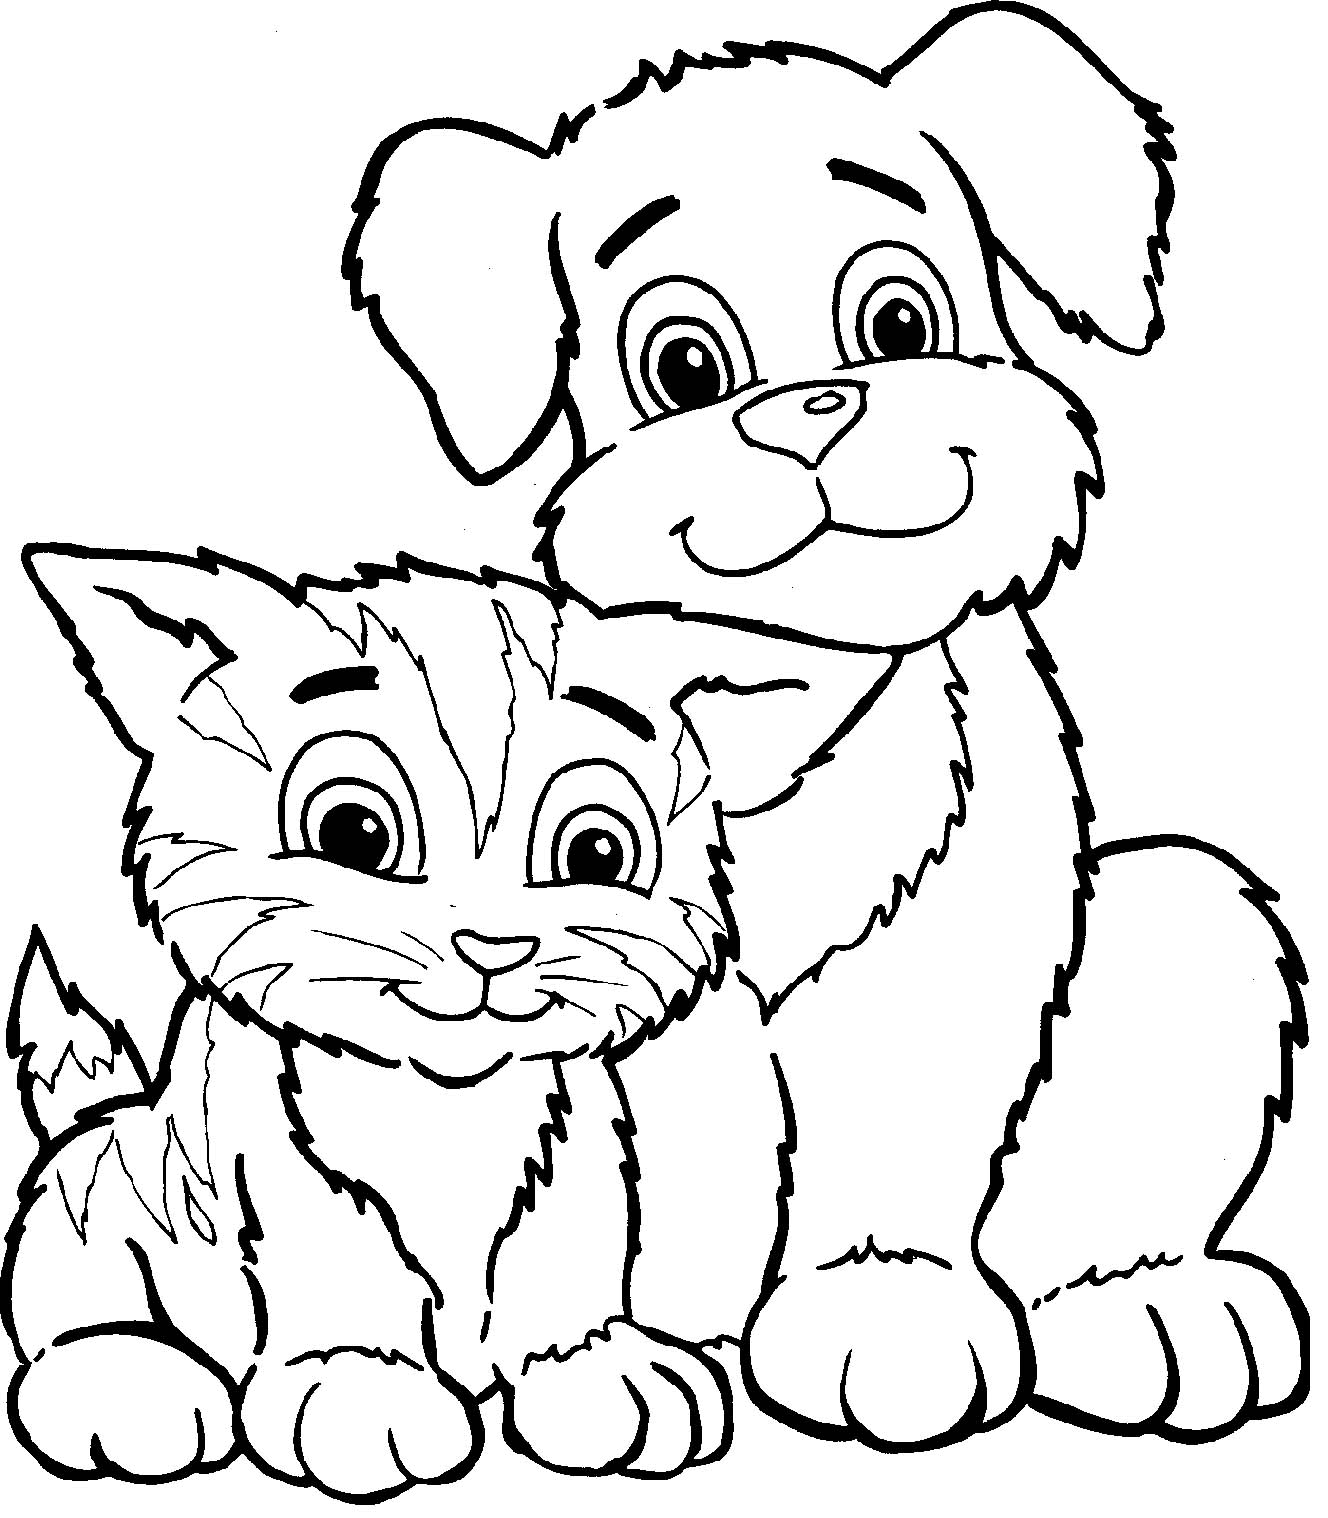 1328x1518 Cat And Dog Coloring Pages With Cat And Dog Coloring Pages